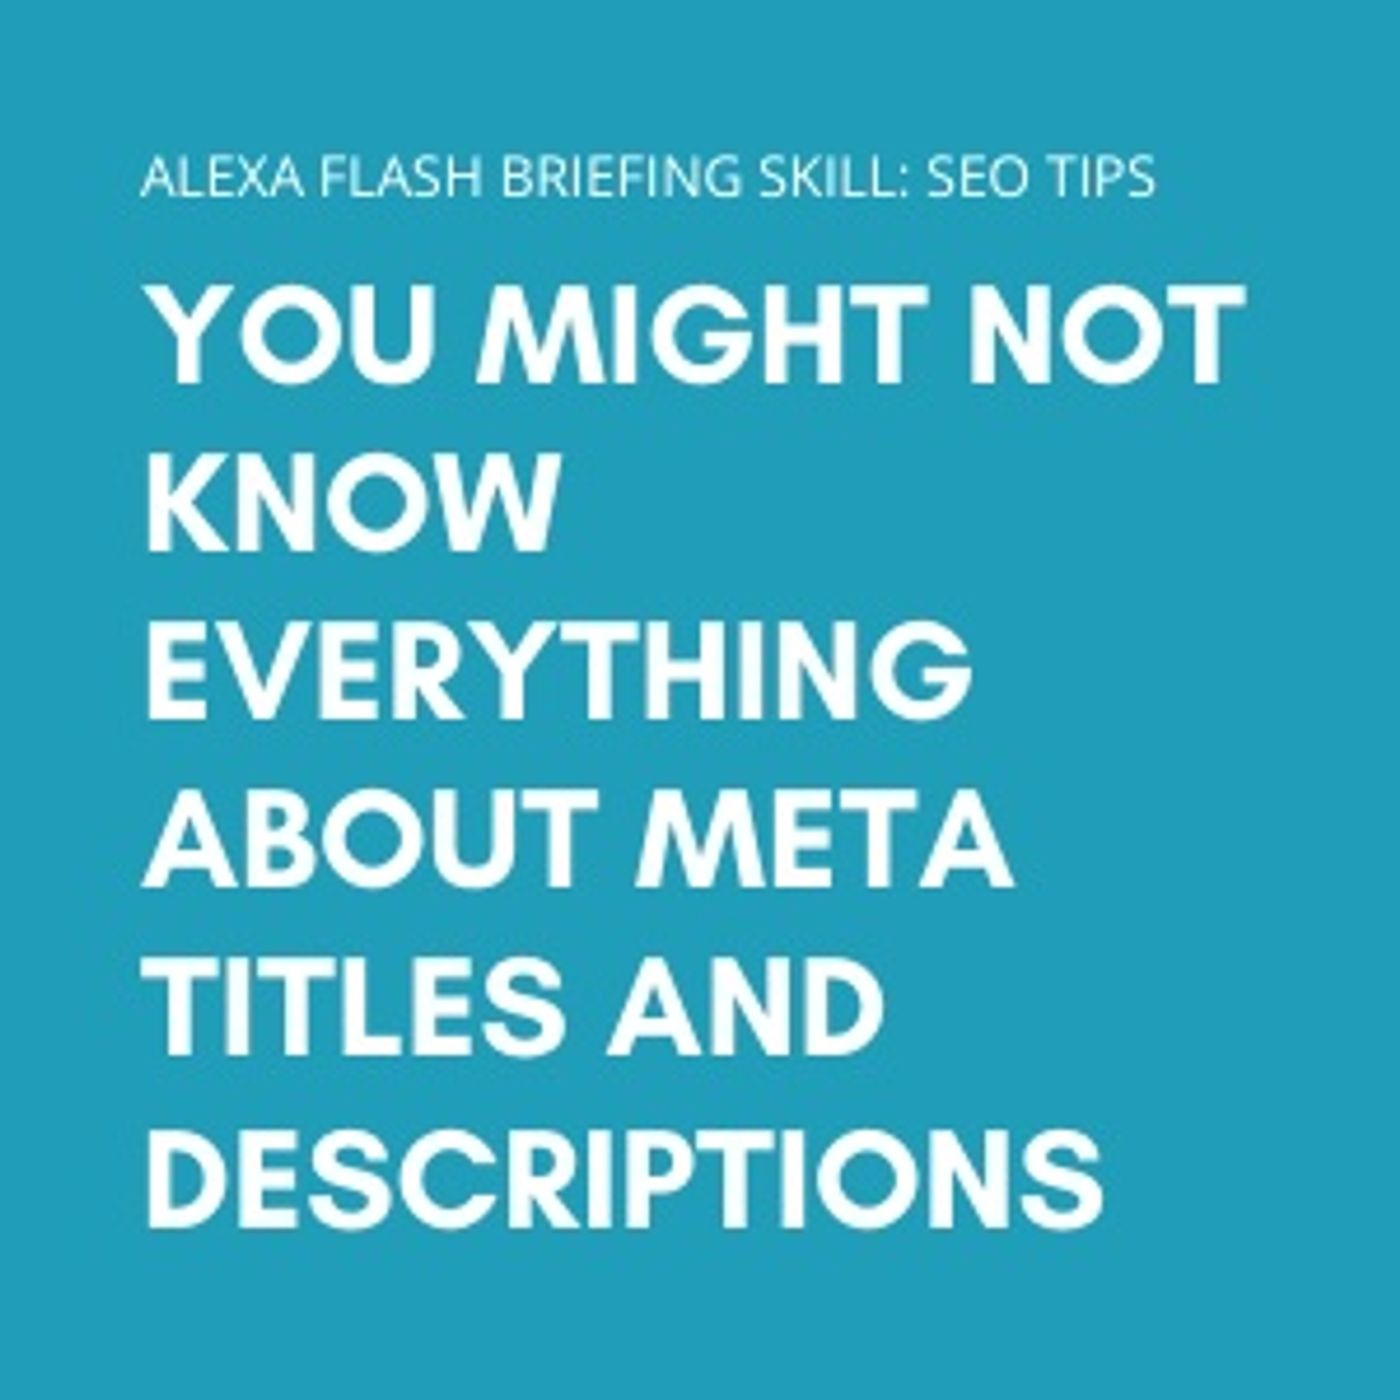 You might not know everything about meta titles and descriptions